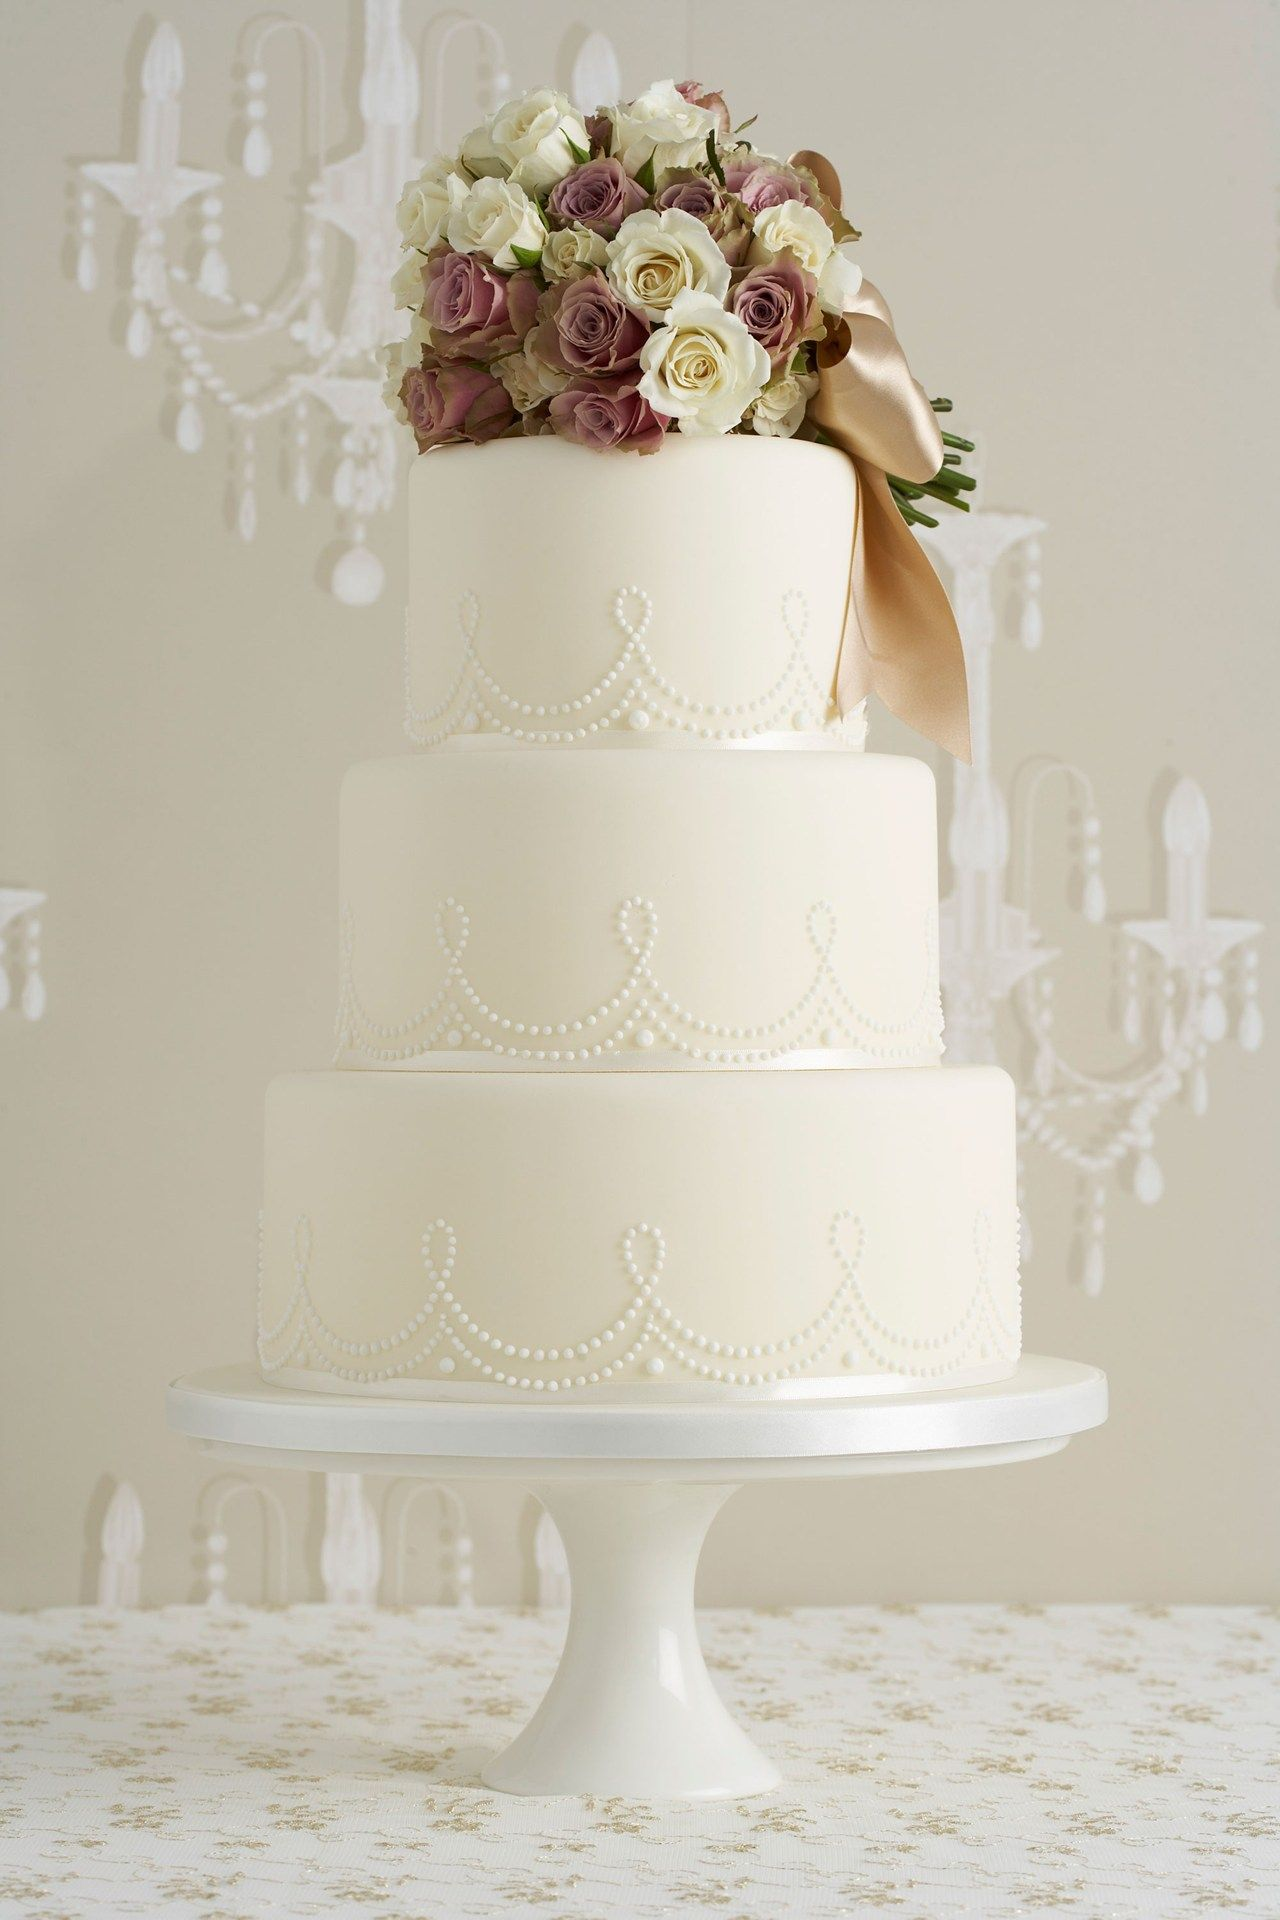 Iced wedding cake collection one day pinterest wedding